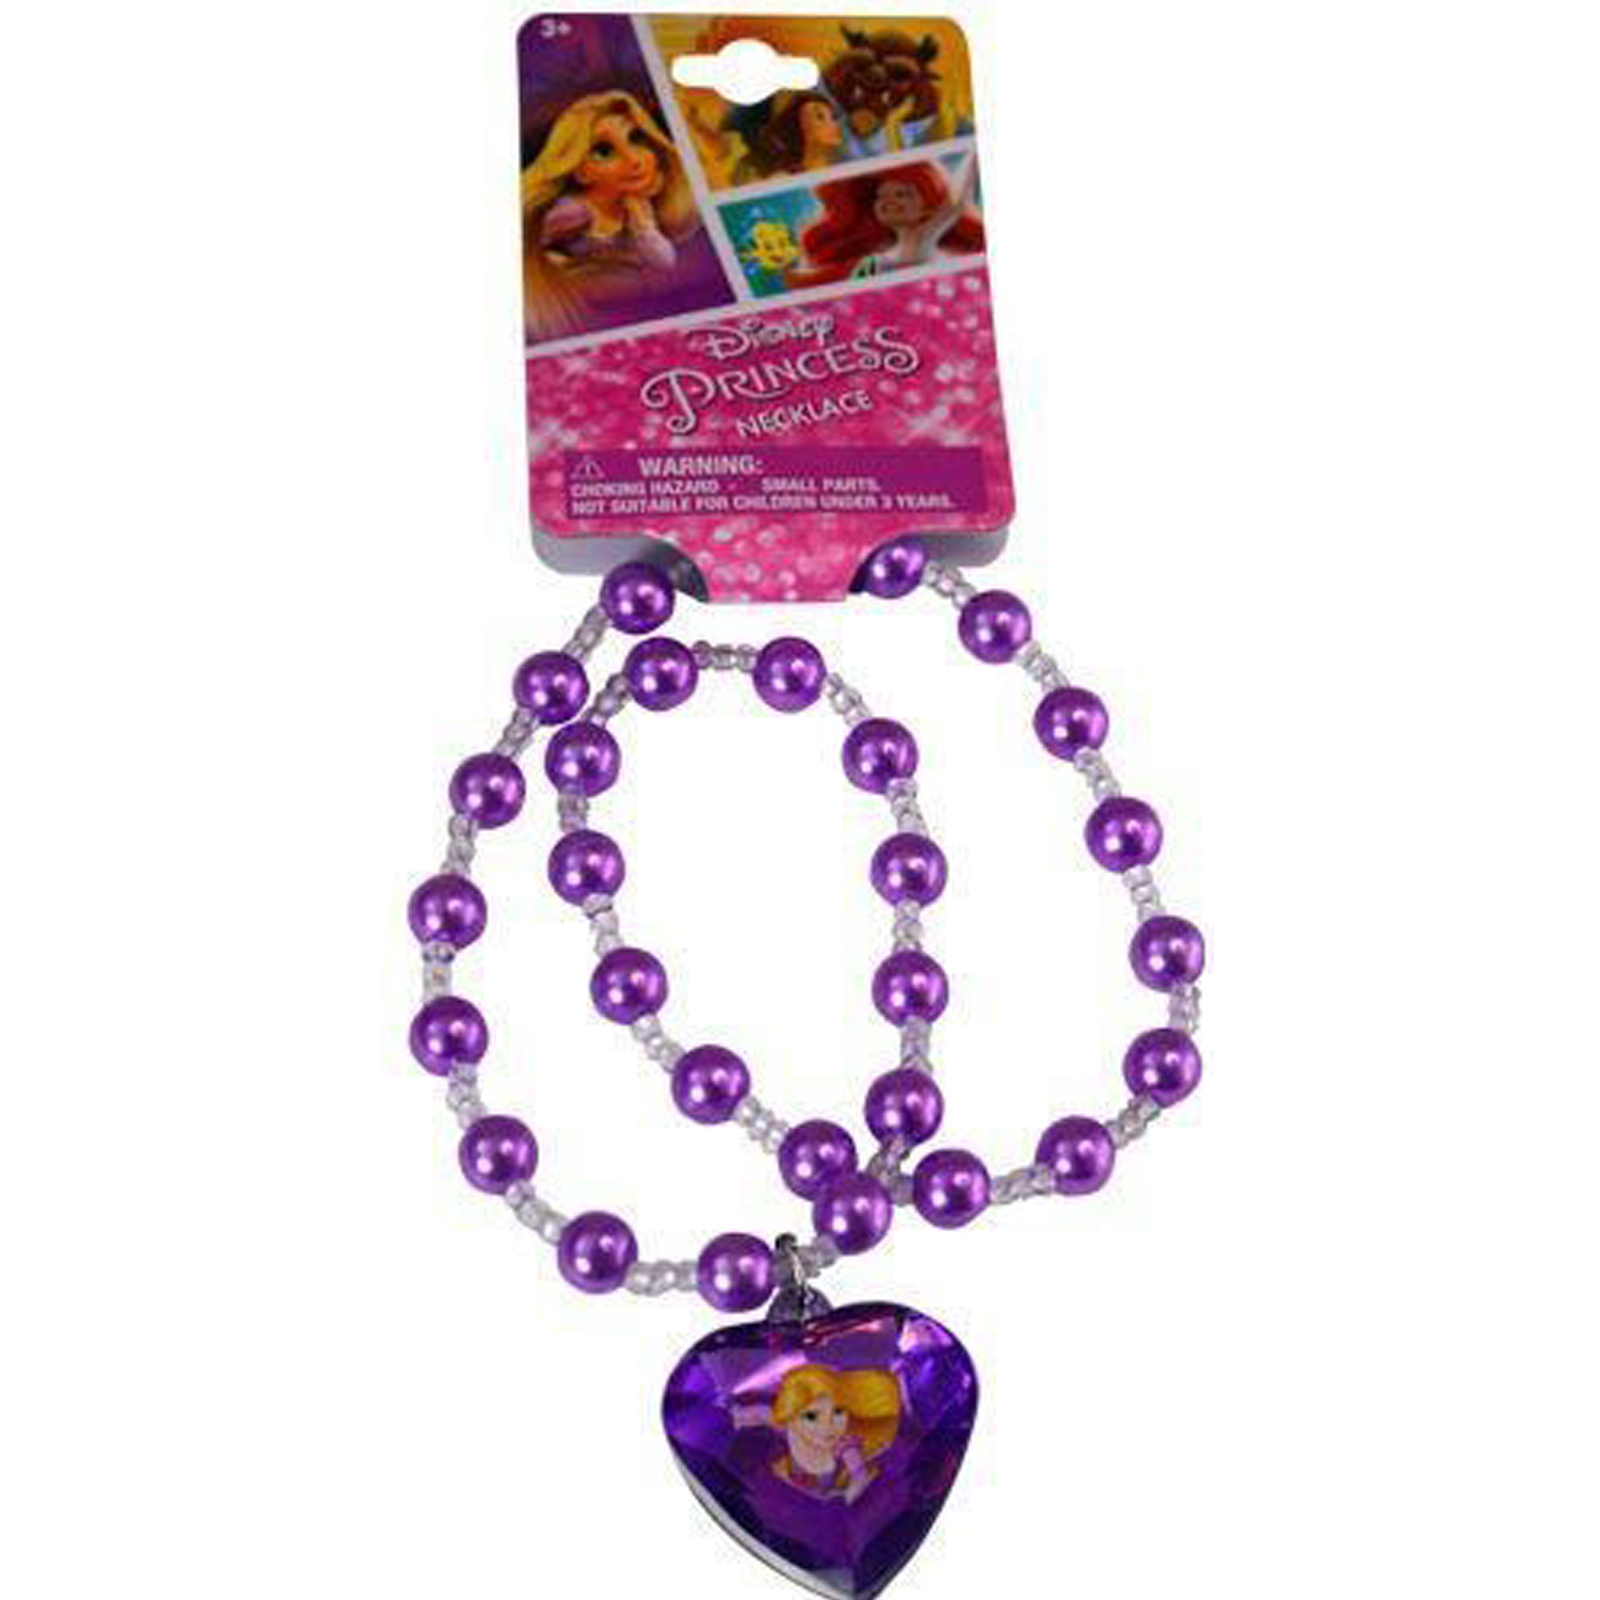 Disney Princess Girls Pearl Necklace Jewelry Rapunzel